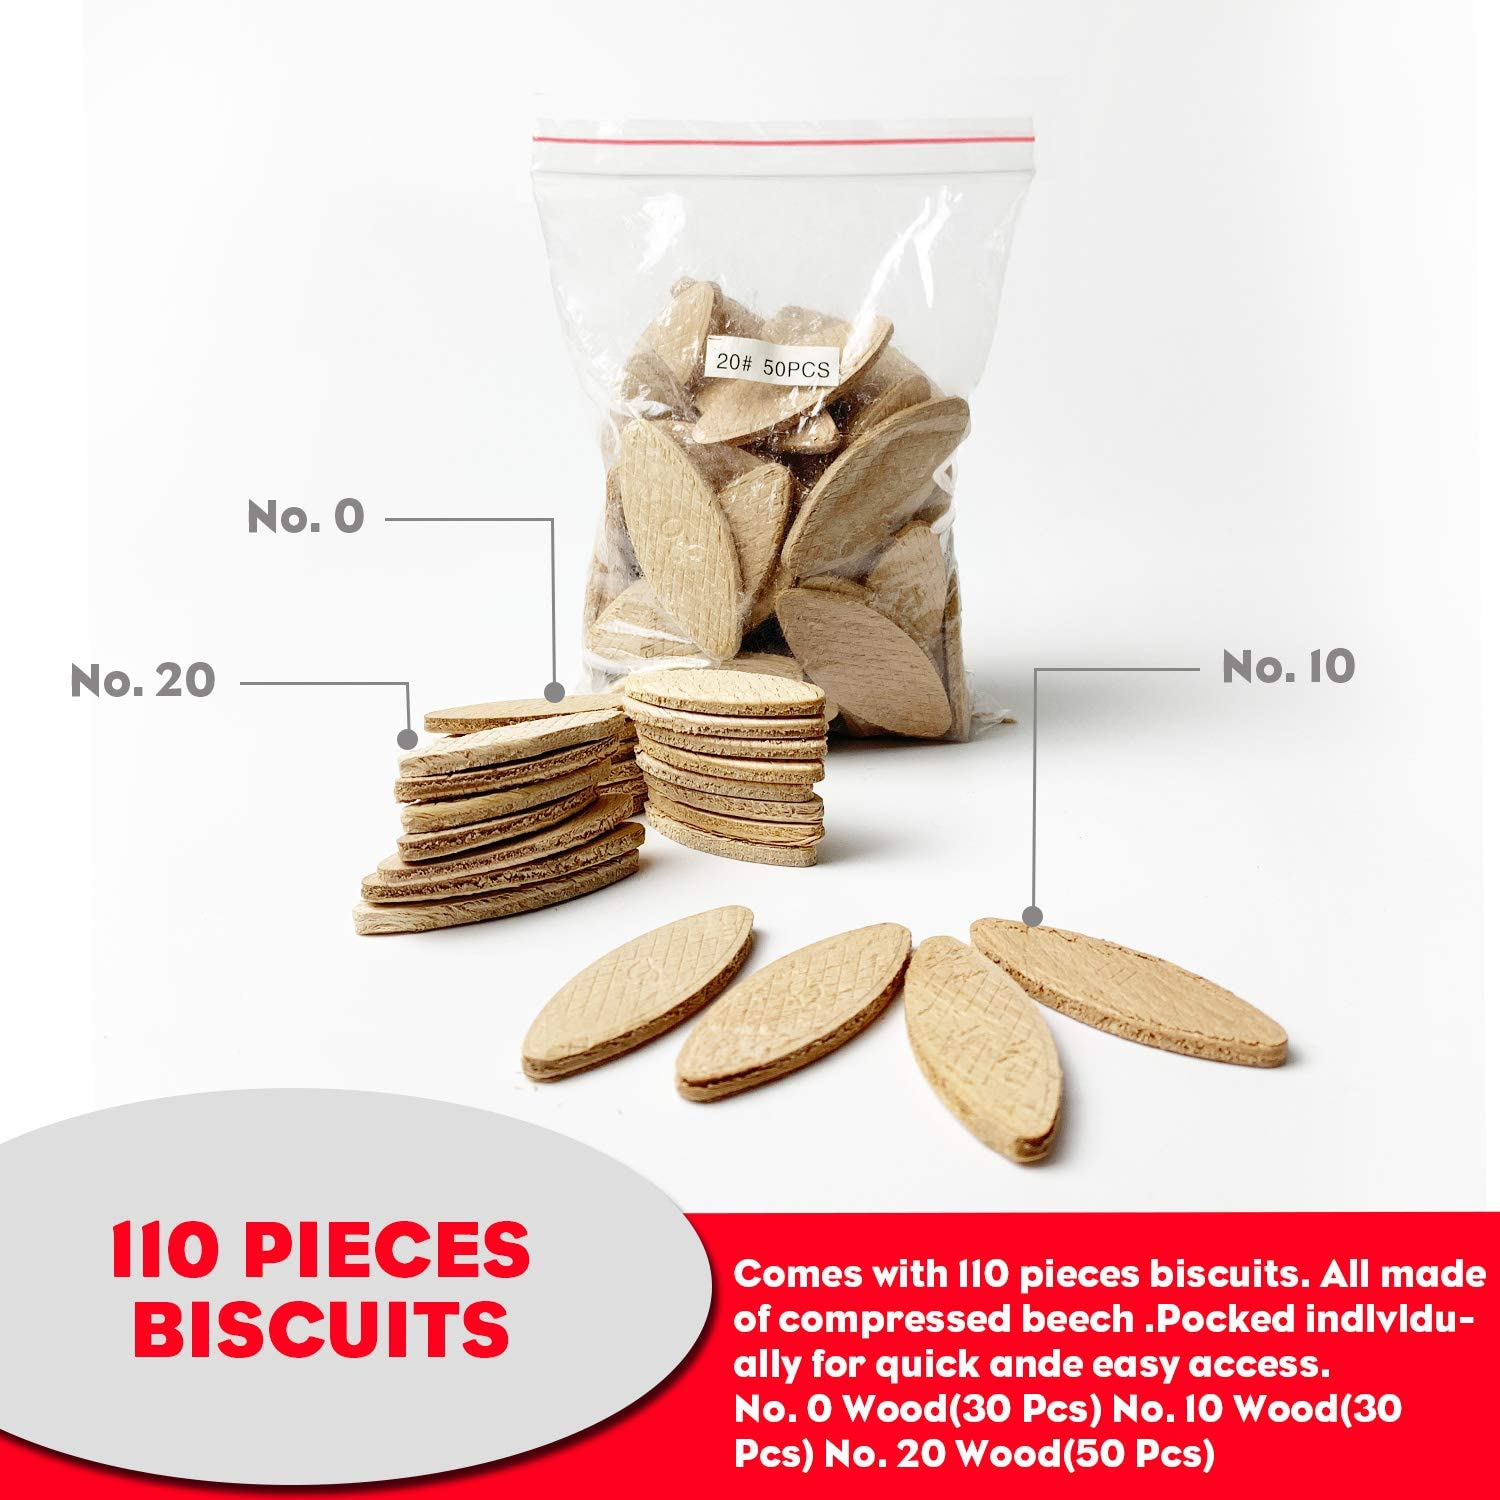 C0404 Plate Joiner Biscuits Size 20-200 pcs